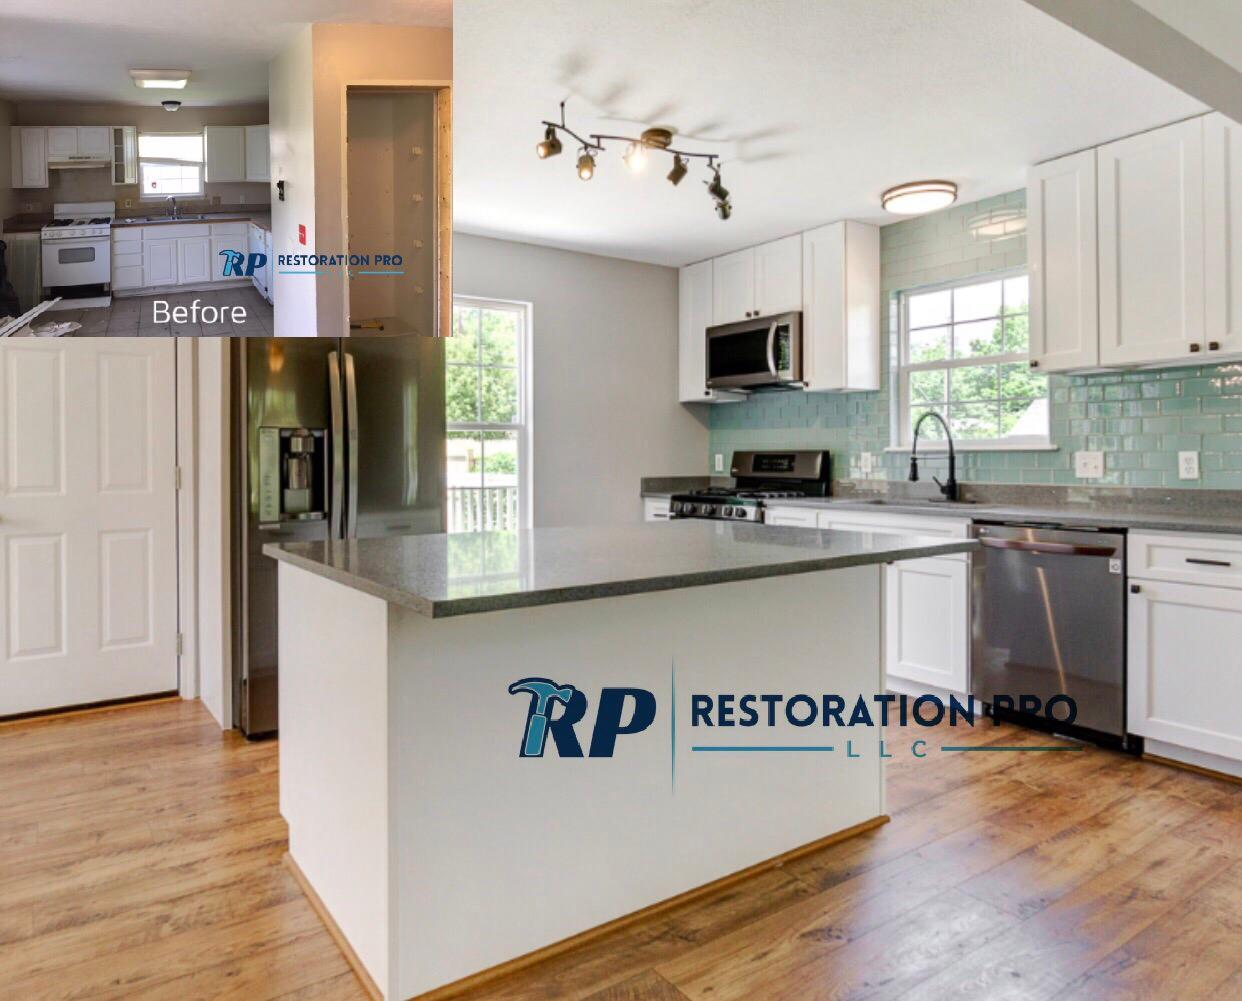 Restoration Pro Llc Coupons Near Me In 8coupons